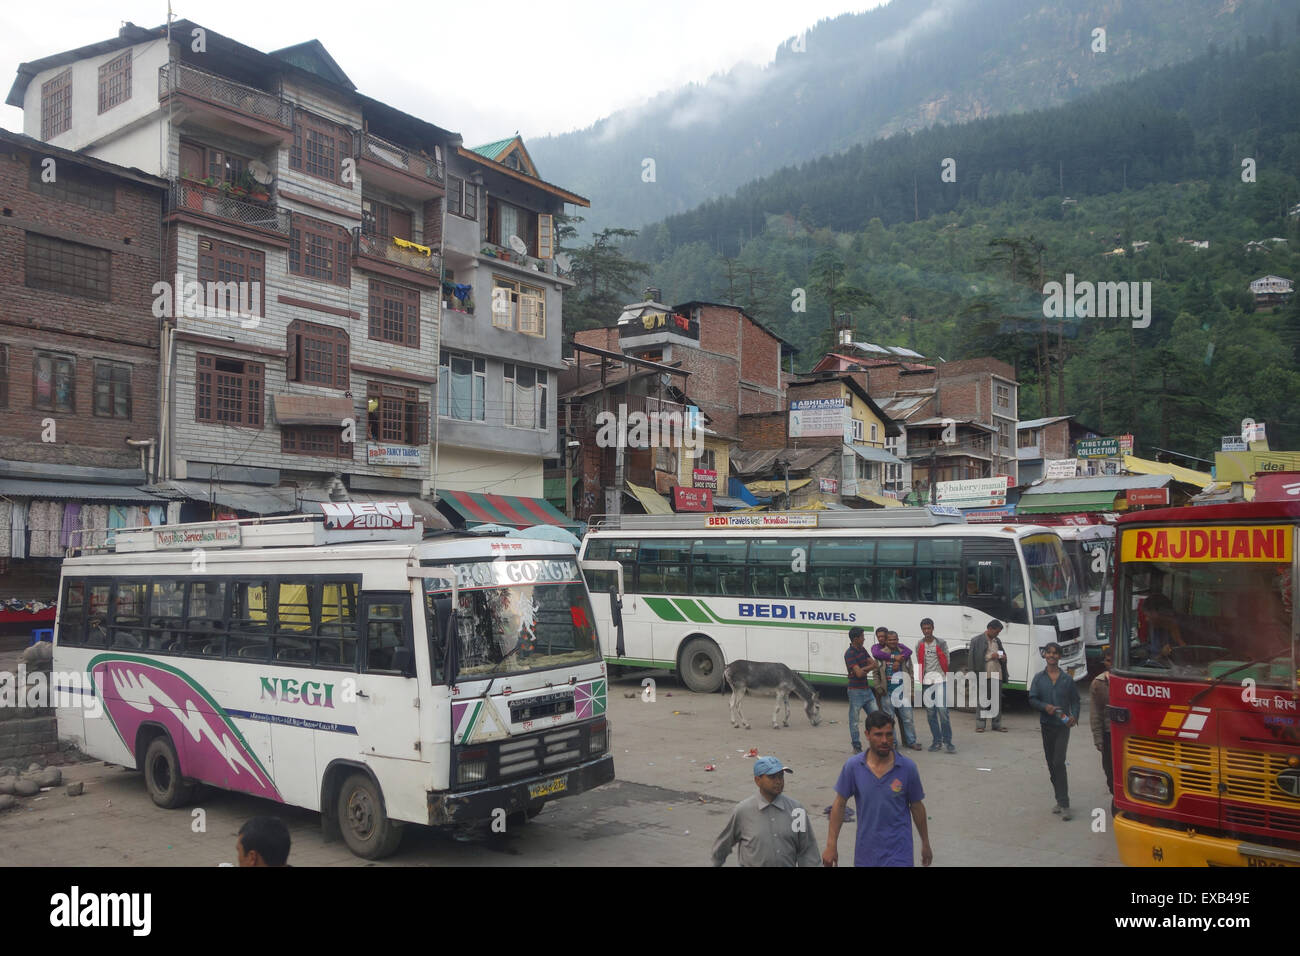 Donkey standing by bus stand in the popular tourist town of Manali, Himachal Pradesh, India - Stock Image